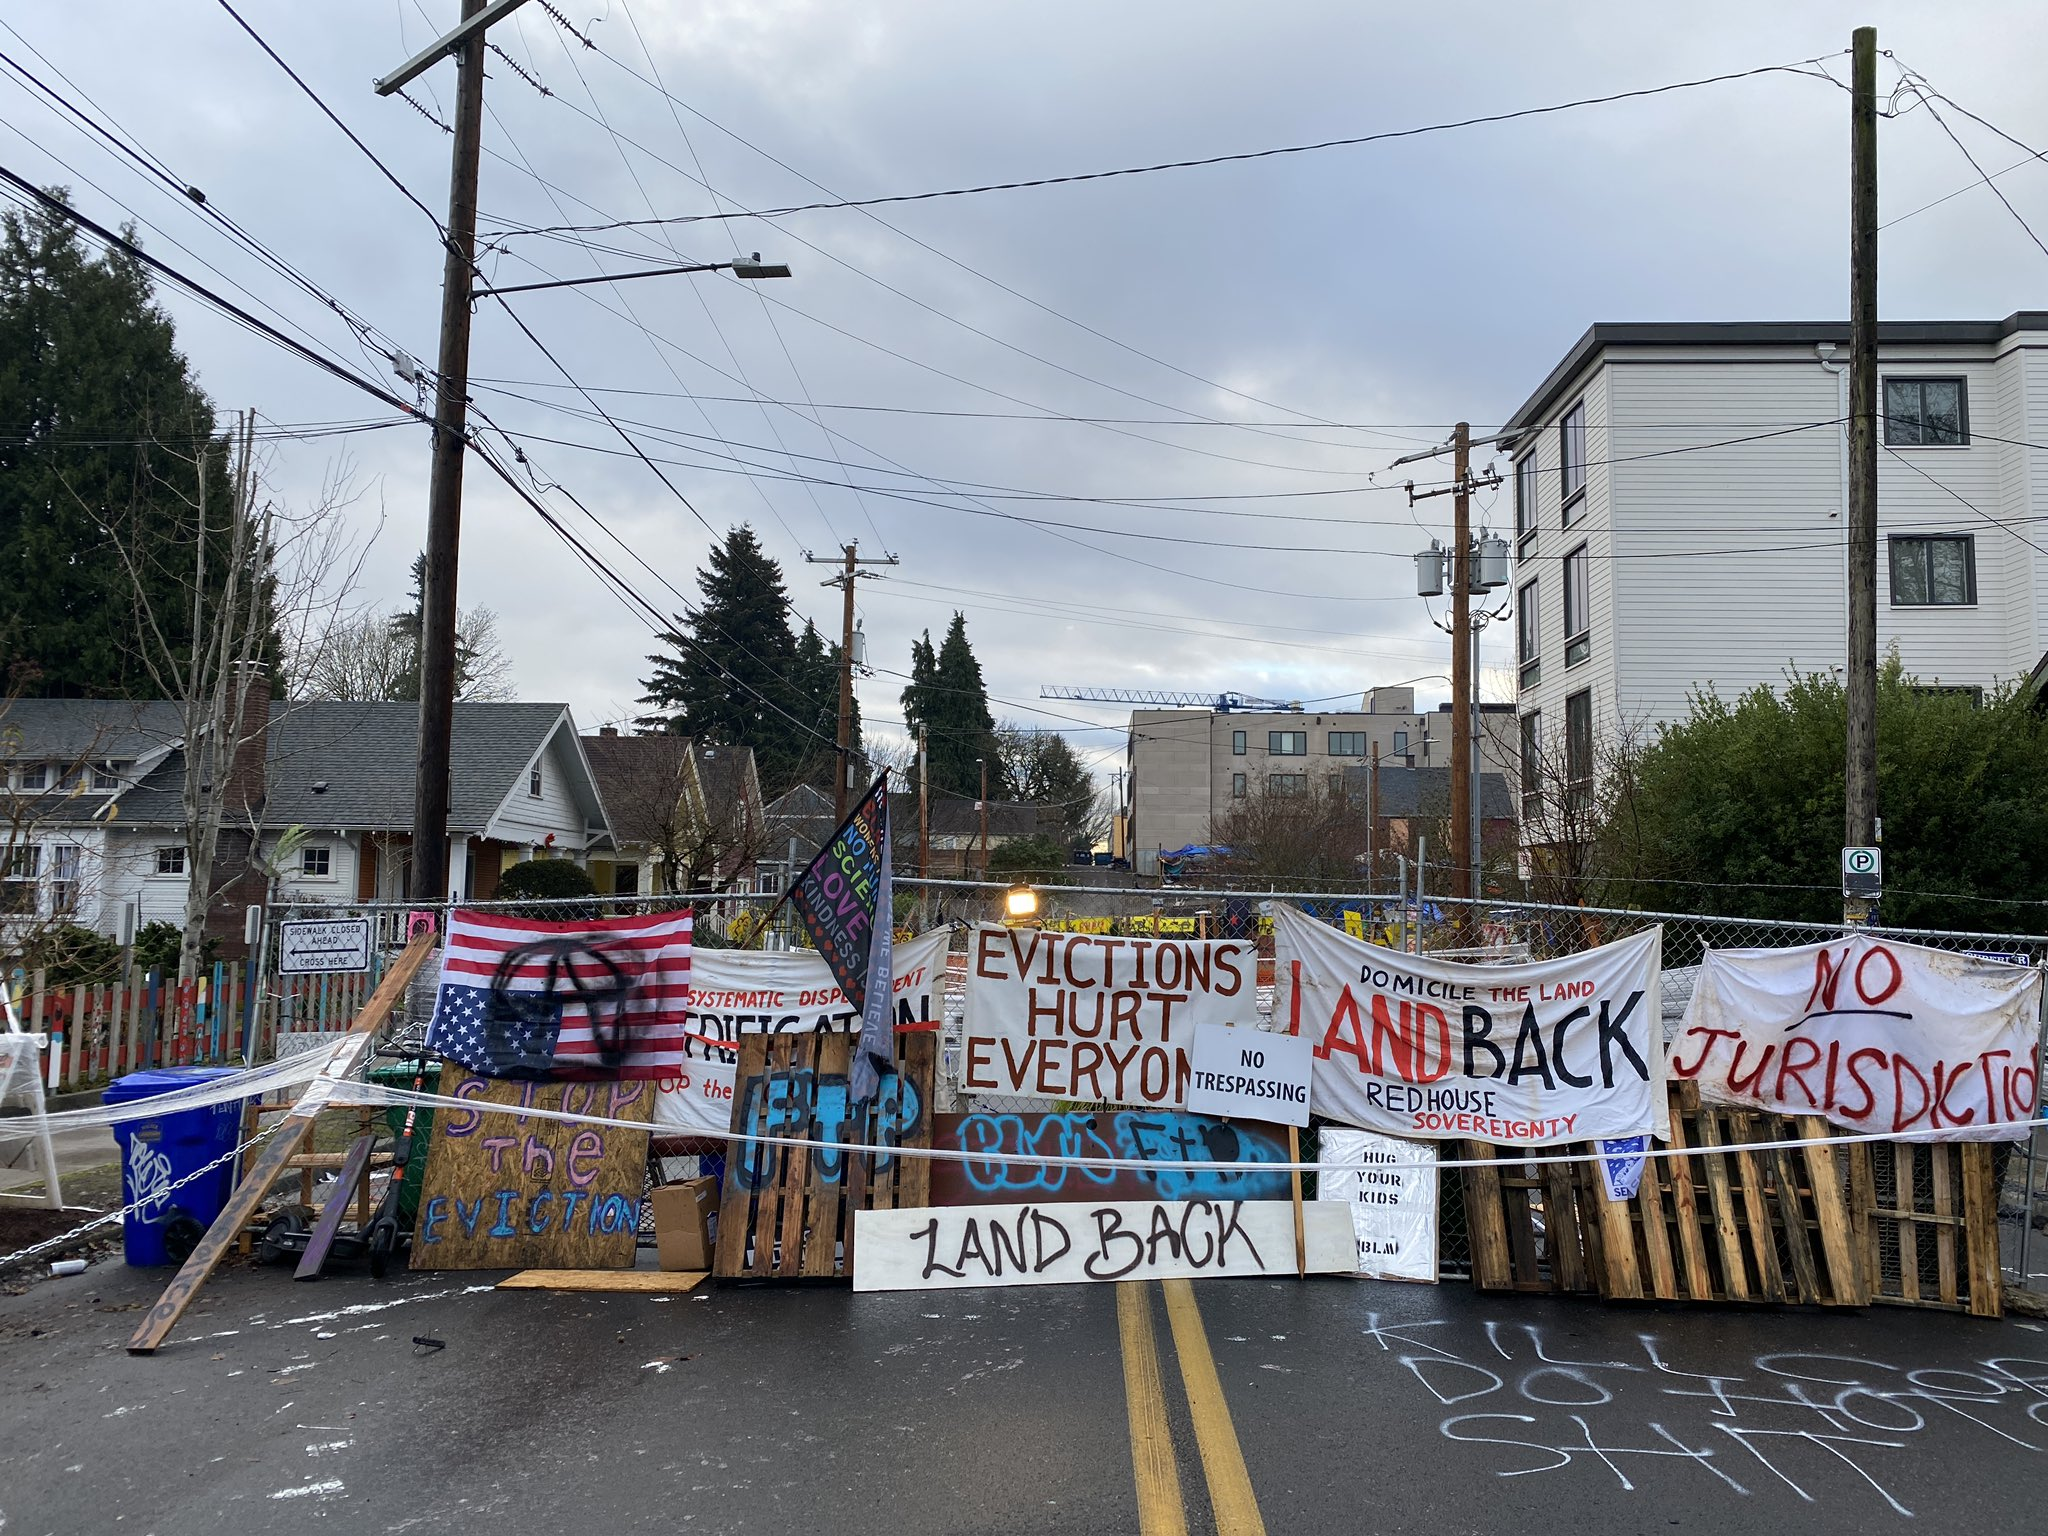 Protesters at Red House Eviction Defense Build-Up Barricades